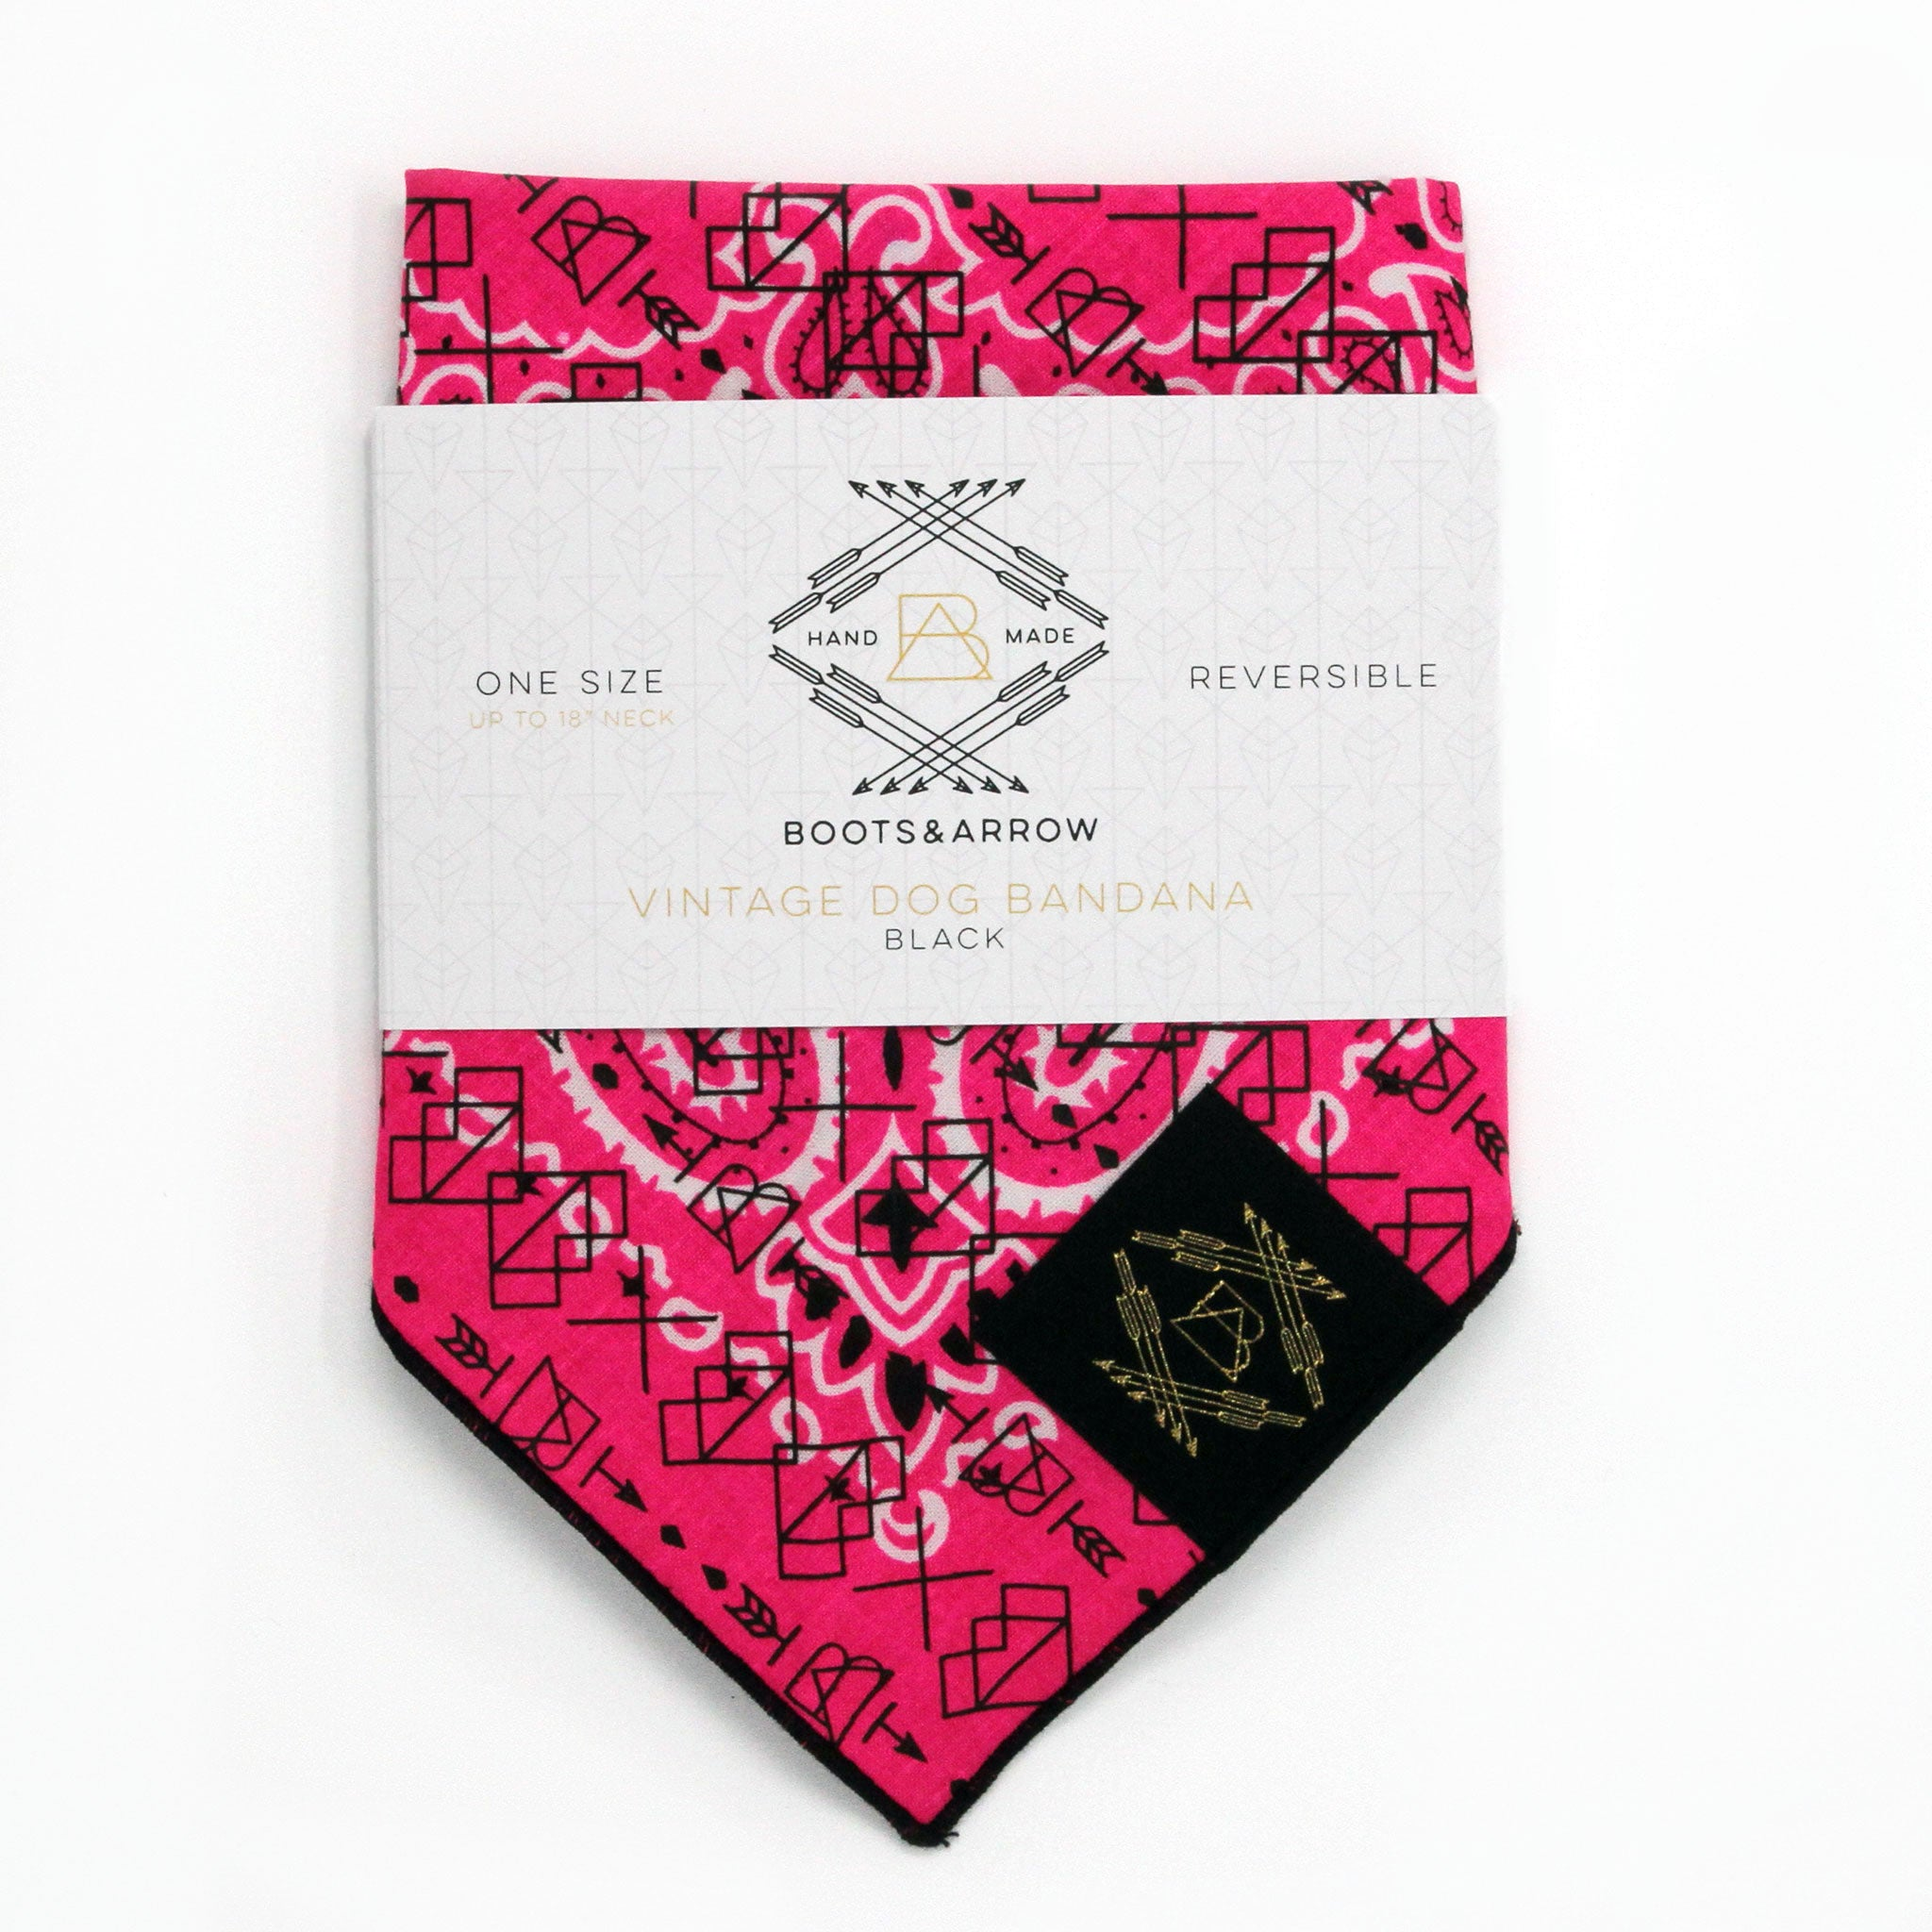 Neon Pink Vintage Dog Bandana With Black Screen Printing